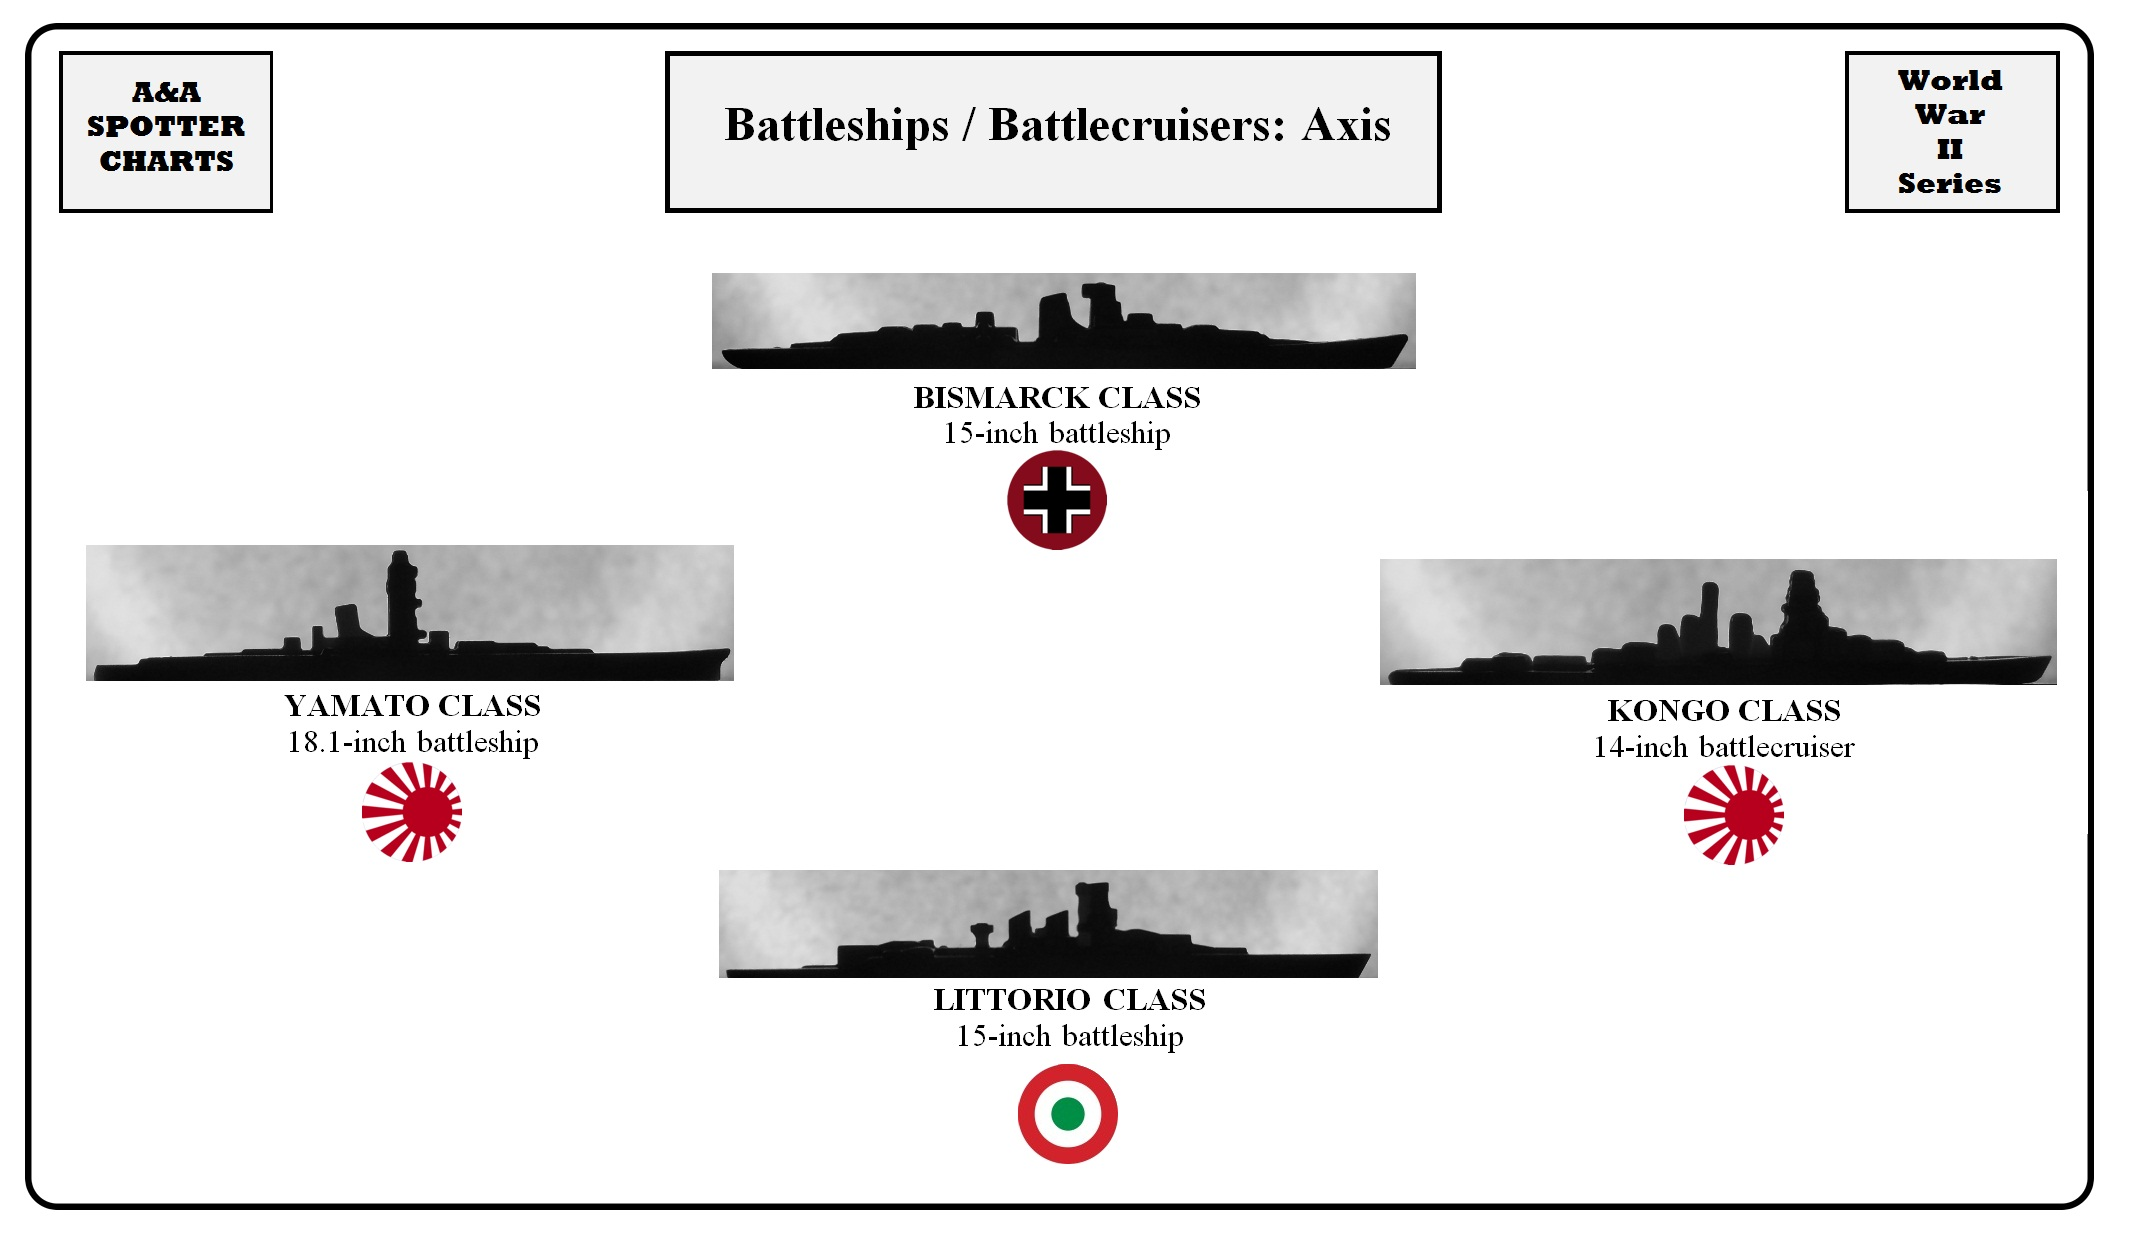 WW2-Sea-Battleships & Battlecruisers-Axis.jpg